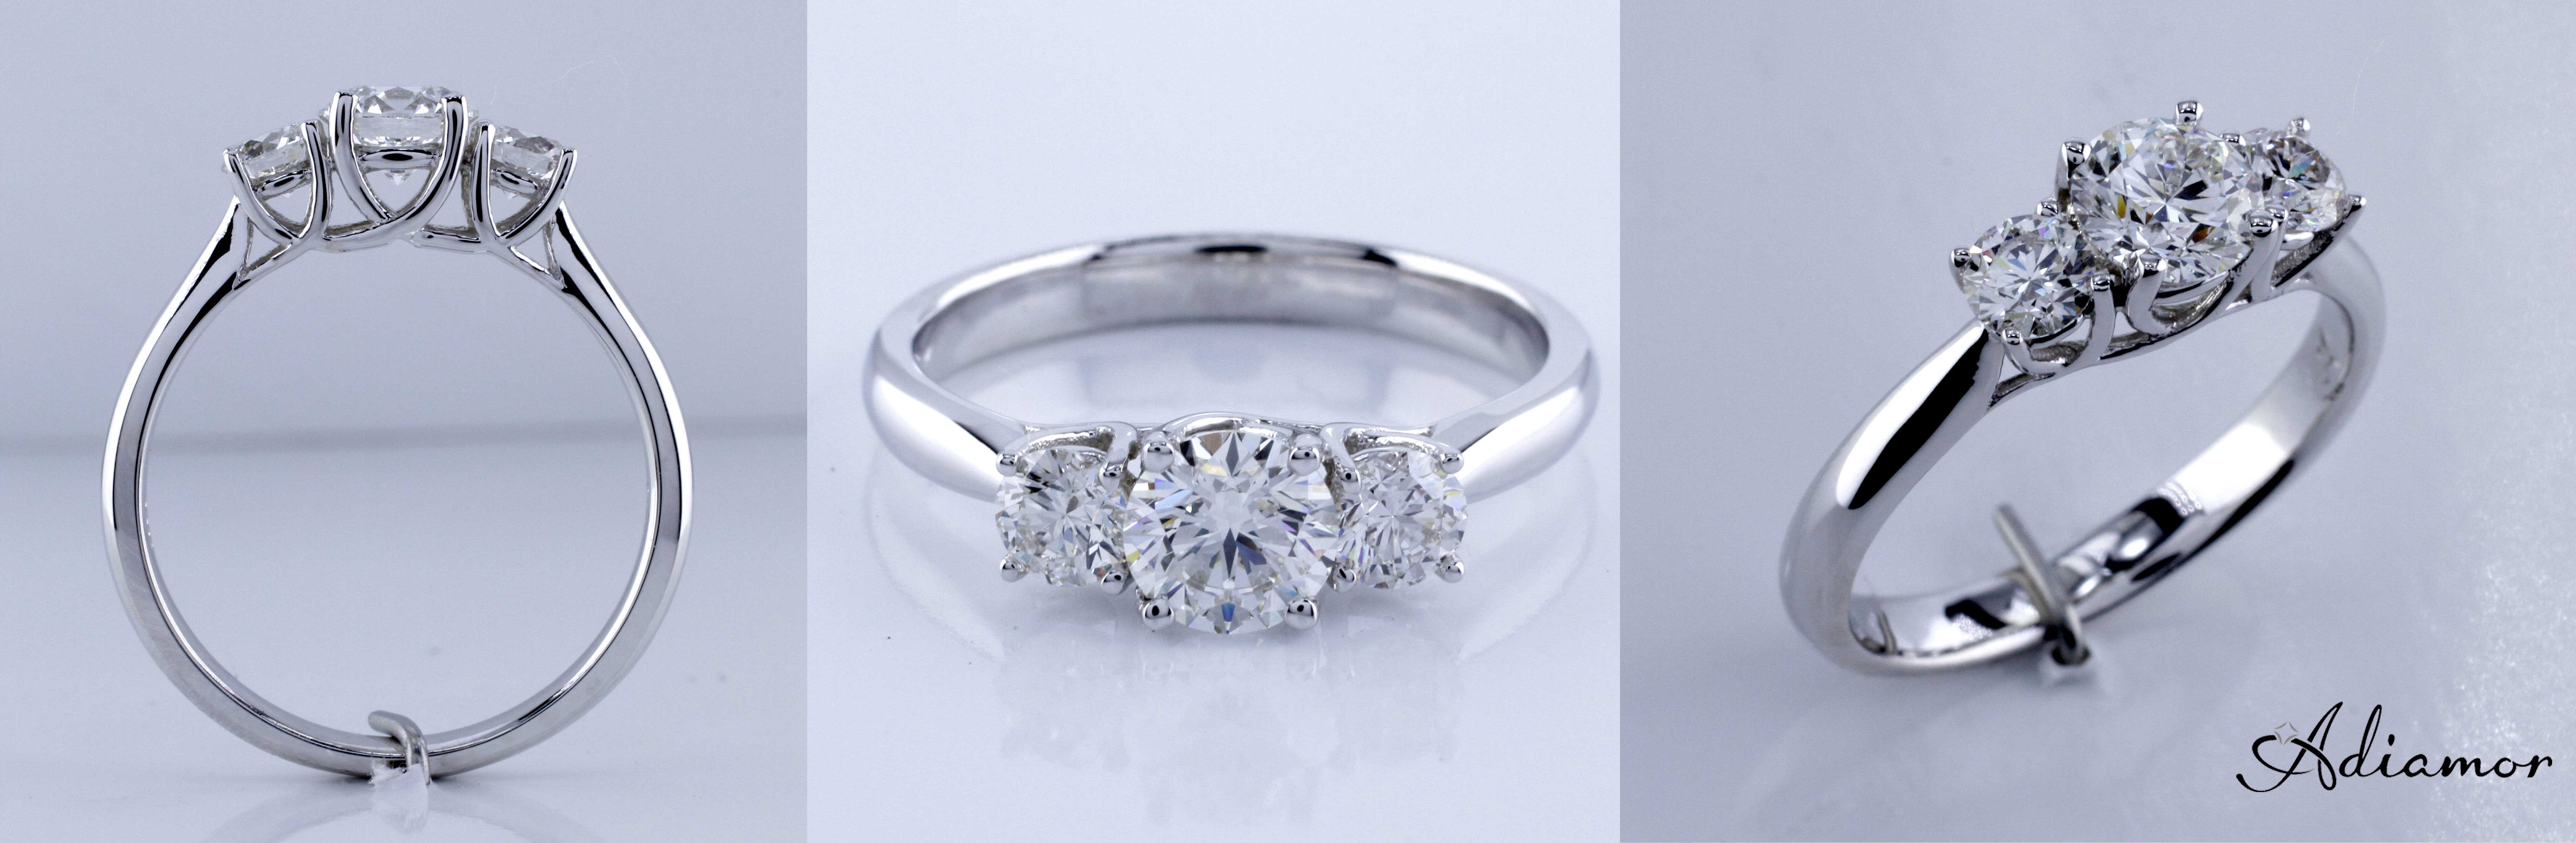 quality jewelry rings diamondland engagement coloured elegant carat best ring diamond fancy jewellery